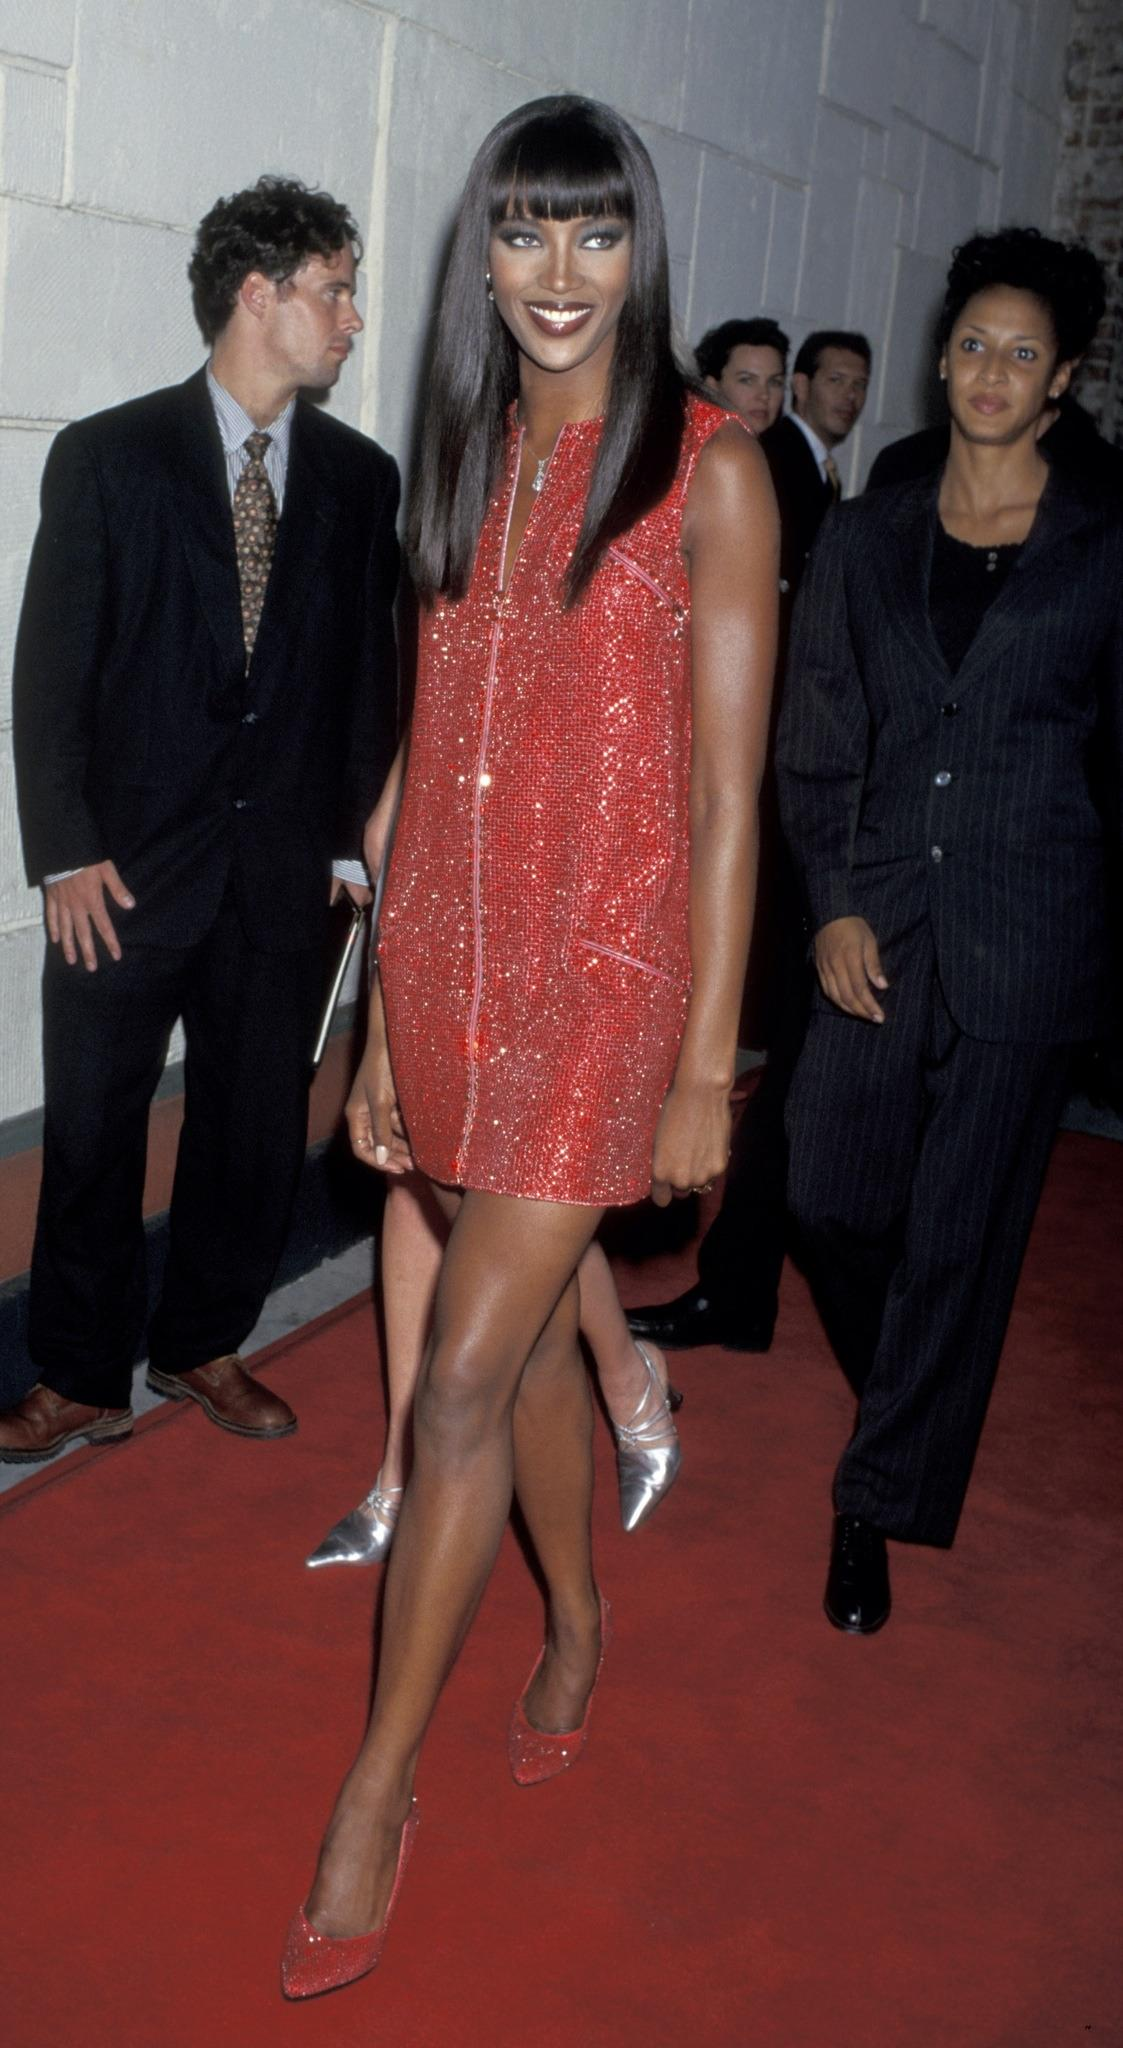 See all of Naomi Campbell's best fashion moments from @amfAR: http://t.co/Fl0H4FrvhC http://t.co/f5H5fCgnqW